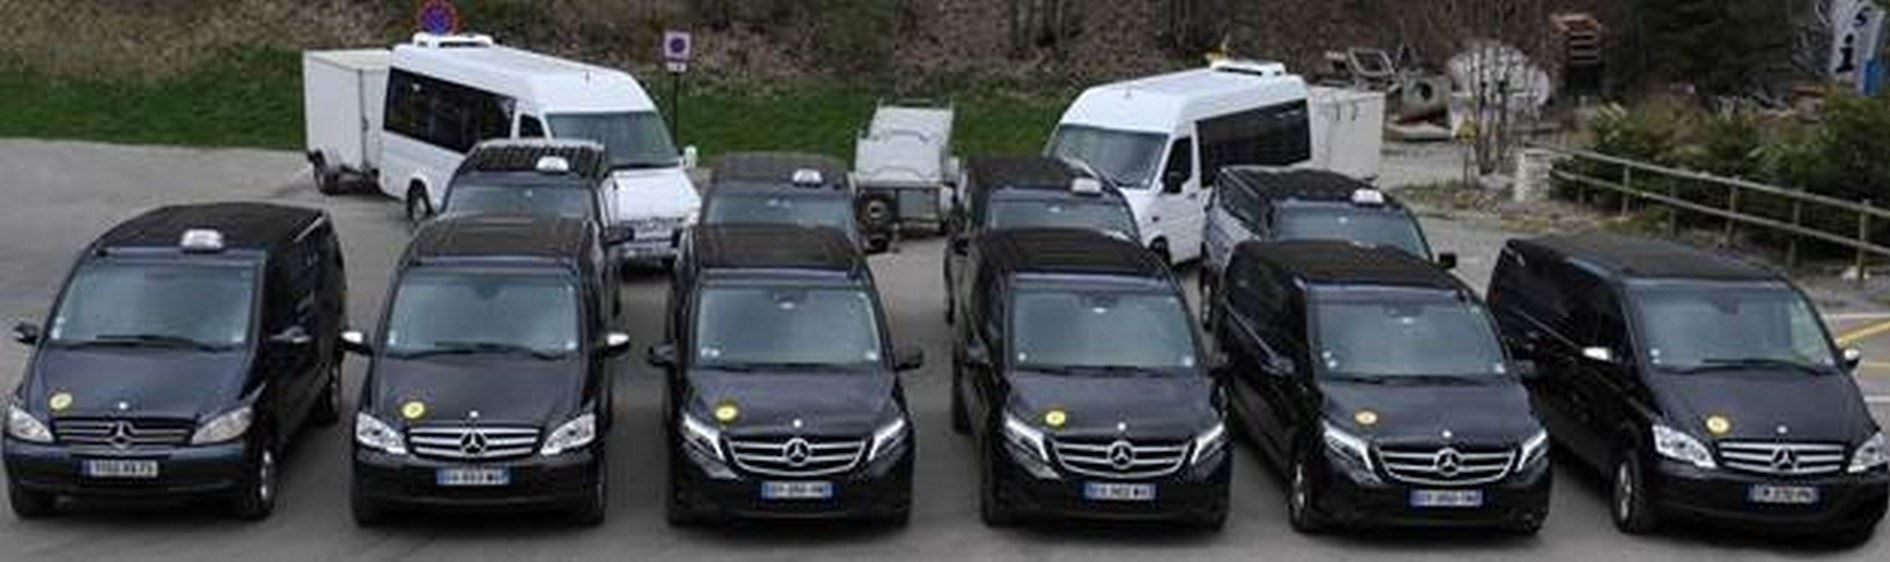 PRIVATE TRANSFER FROM AIX-LES-BAINS AIRPORT - ALPES TAXIS TRANSPORTS